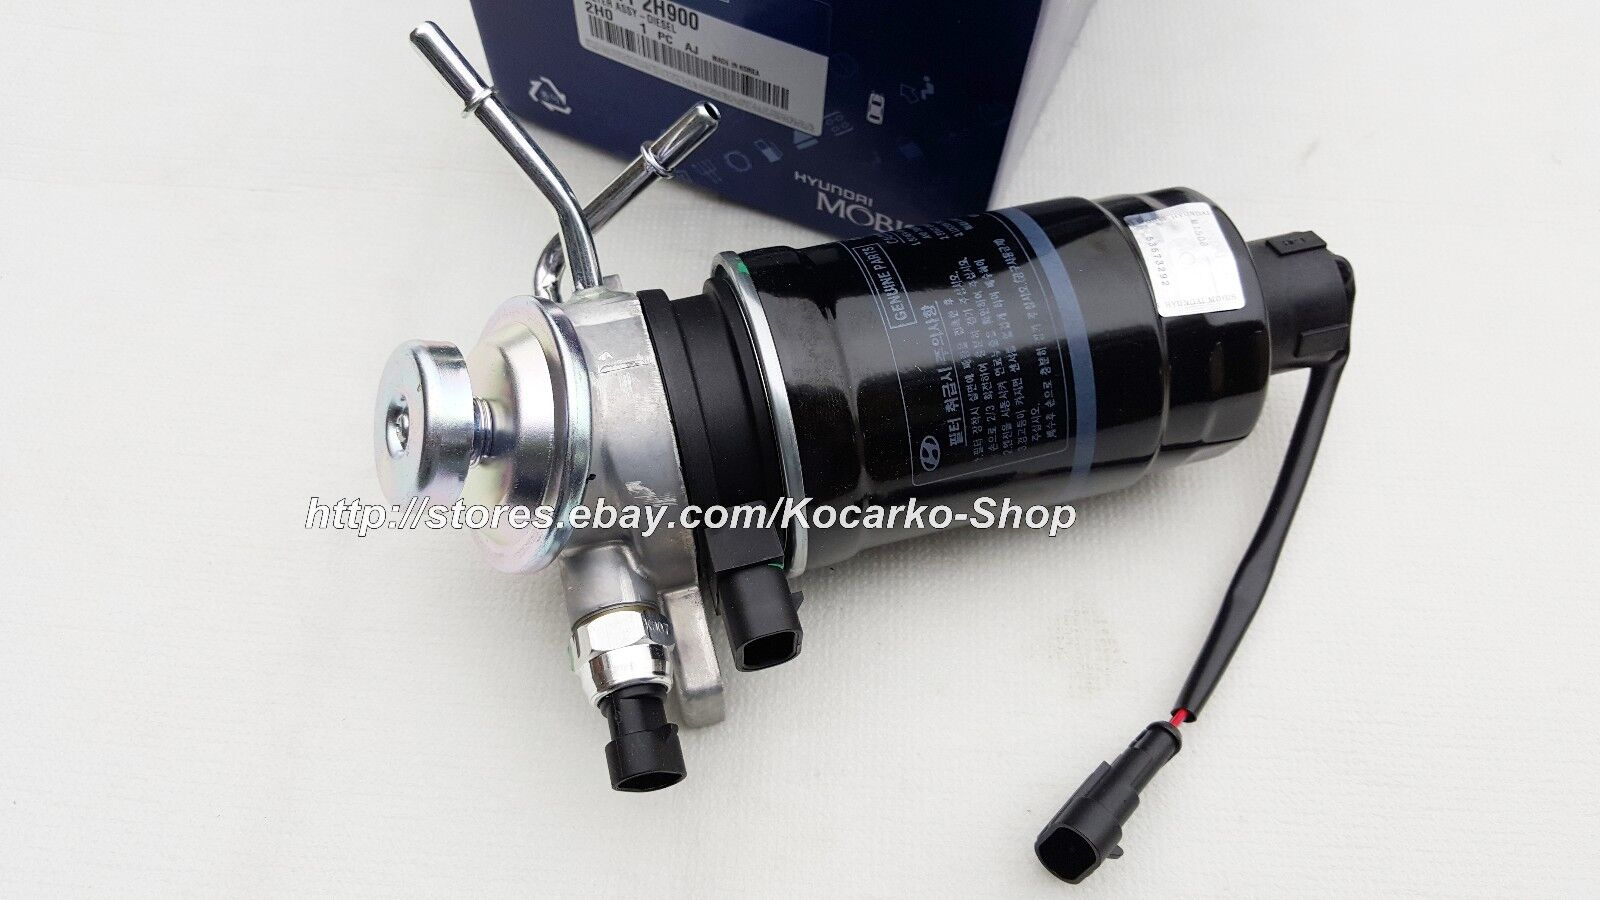 hight resolution of oem diesel fuel filter assy kia ceed 1 6l u 1 6l u2 e g 2007 319112h900